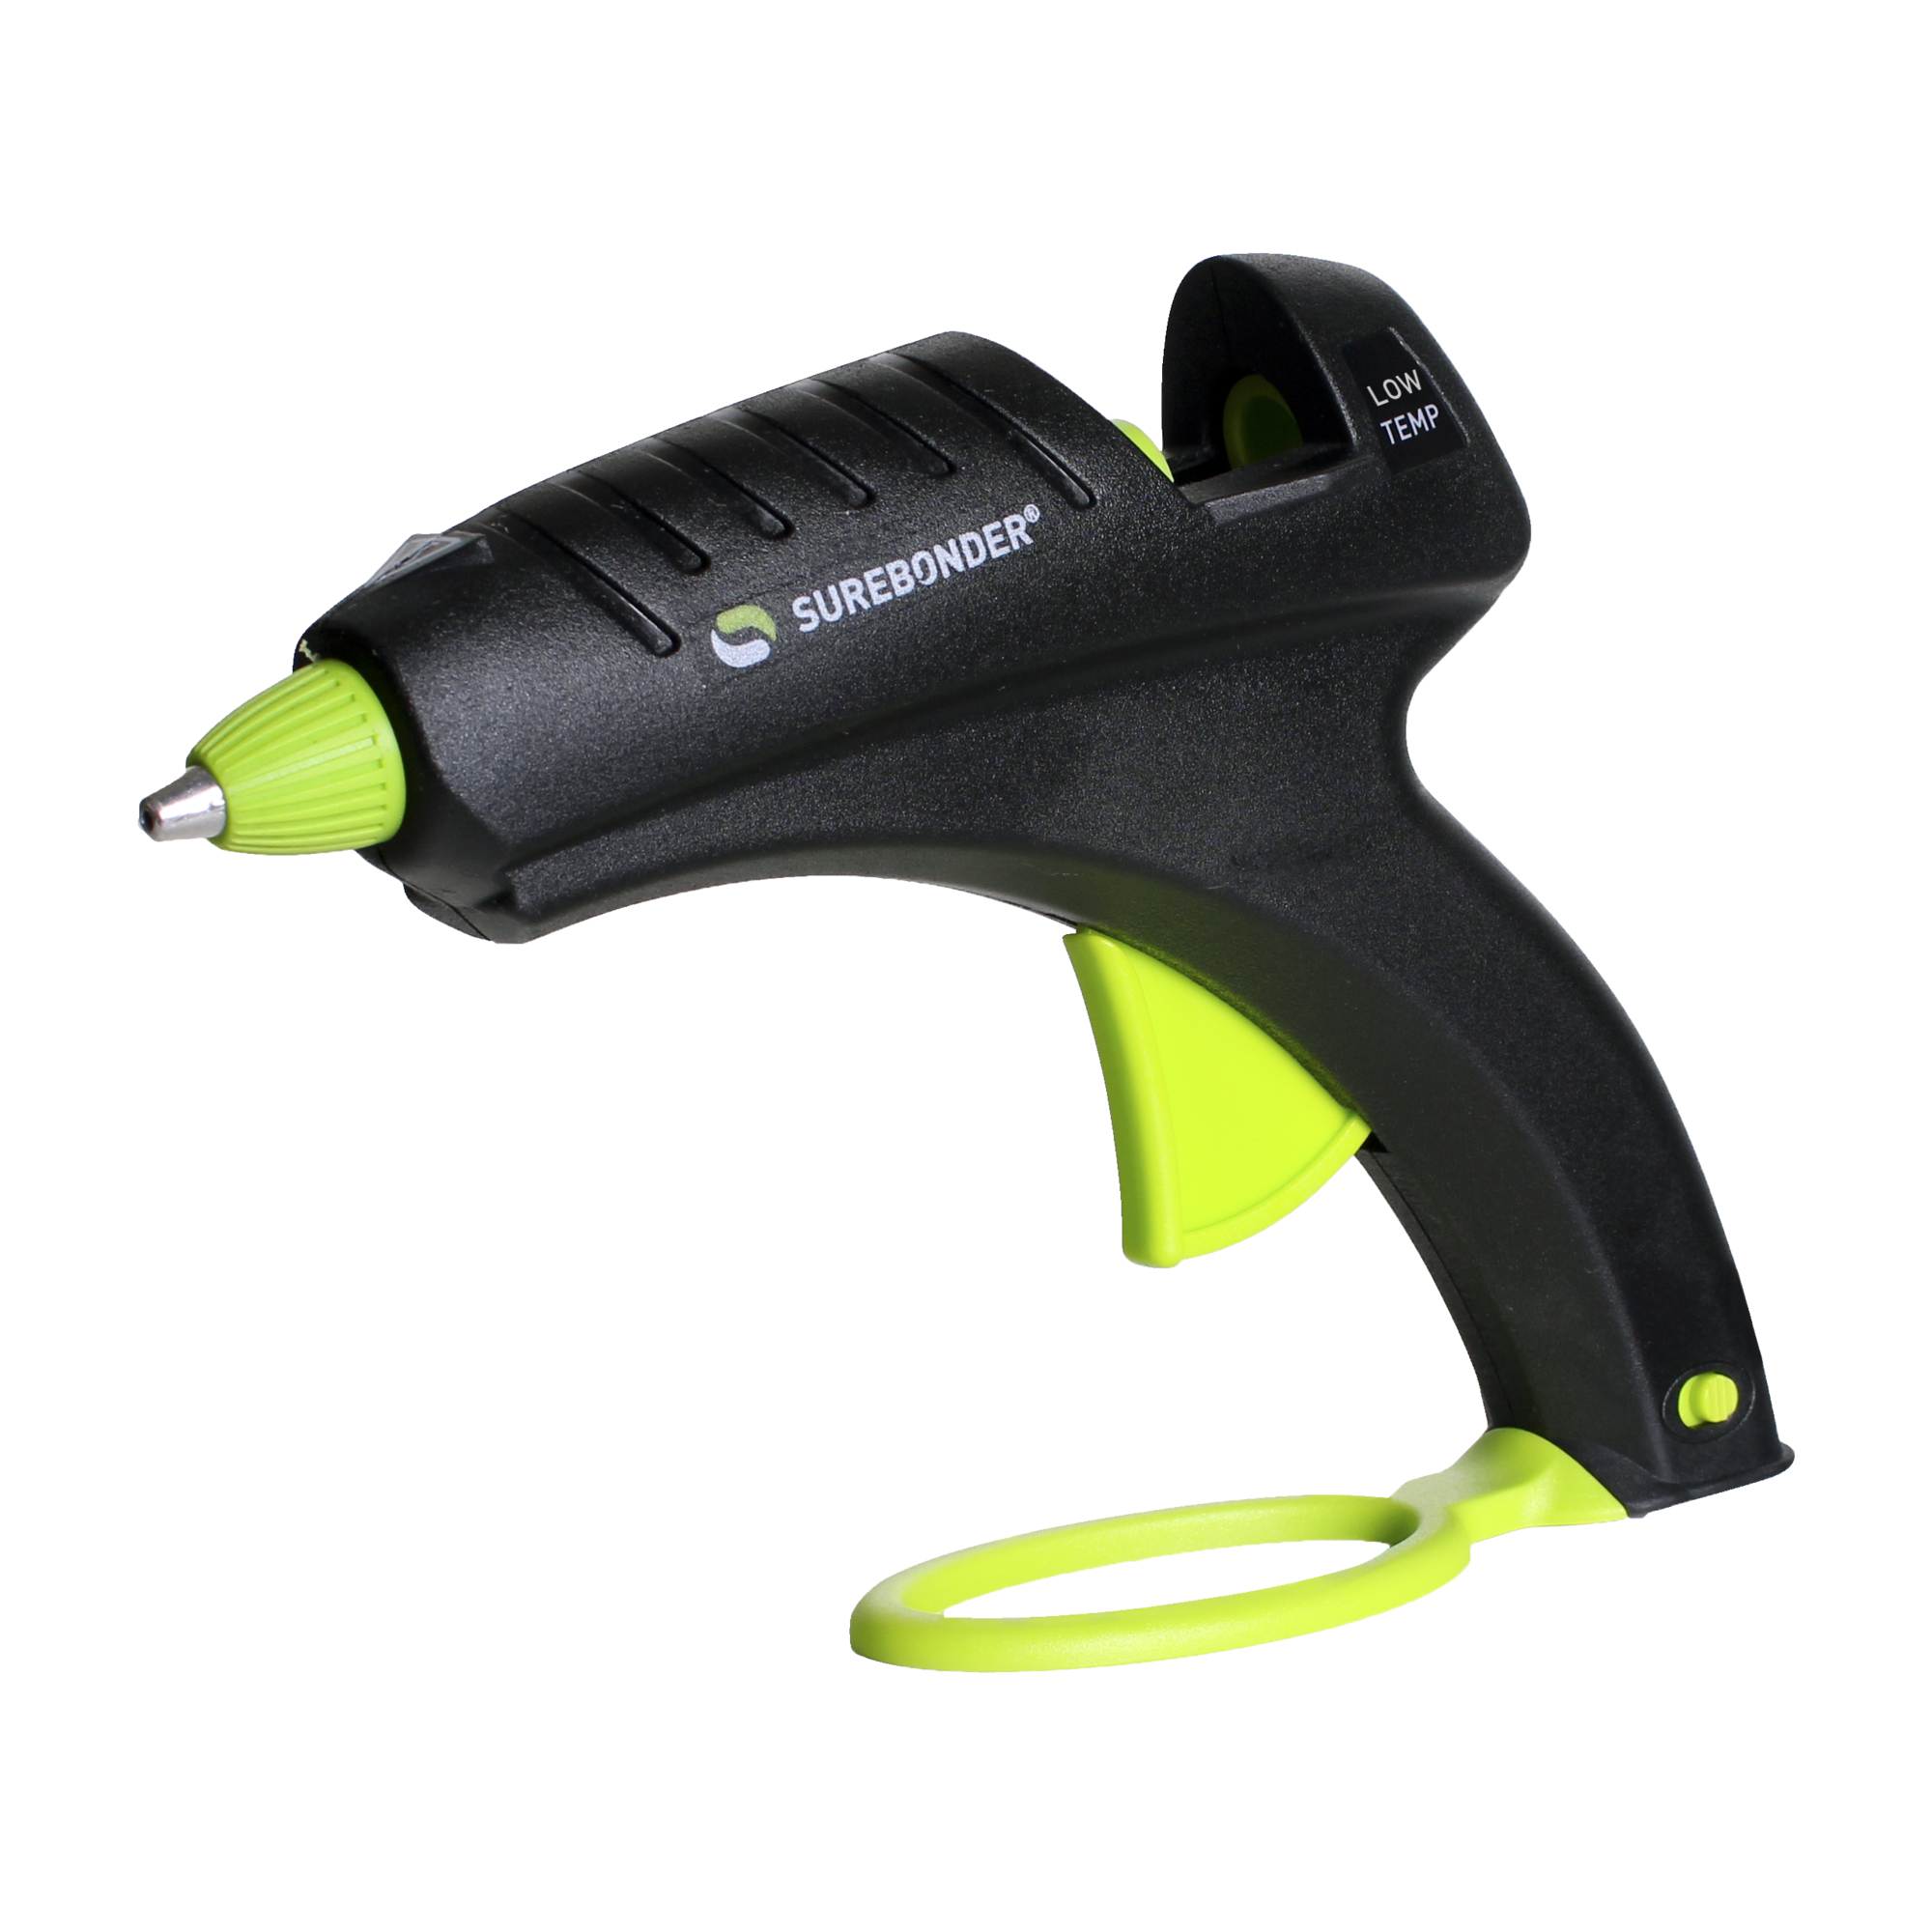 Surebonder Full Size Low Temperature Glue Gun with Safety Fuse, 40 Watt